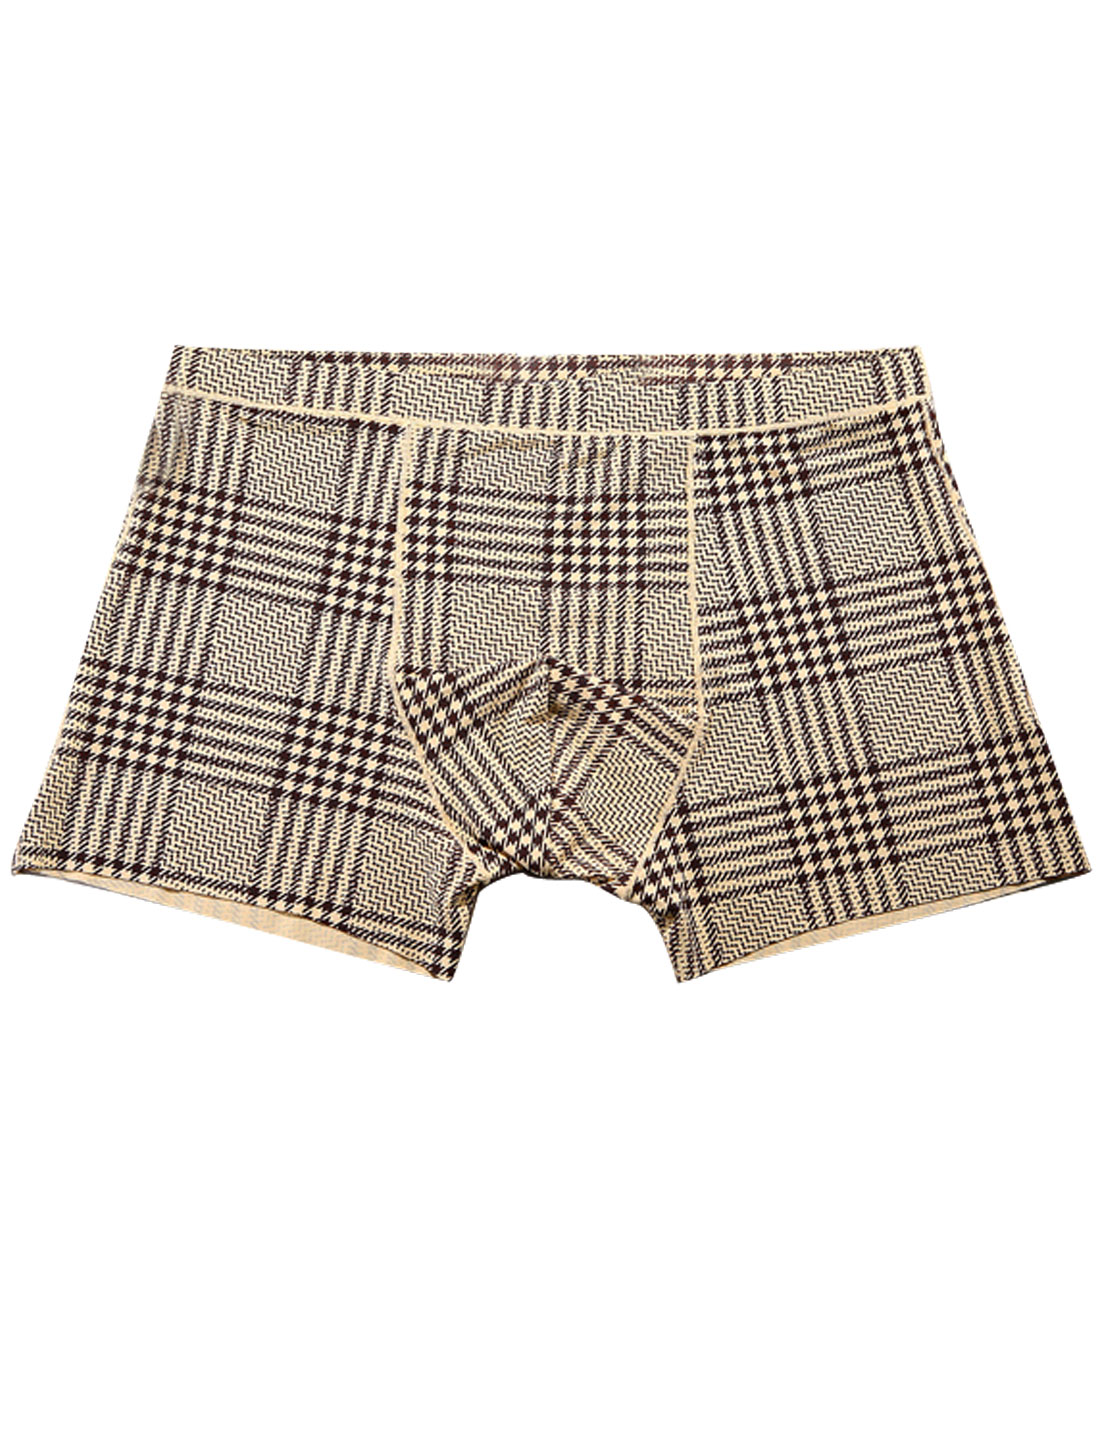 Men Houndstooth Pattern Stretchy Waist Boxer Brief Beige Black W30